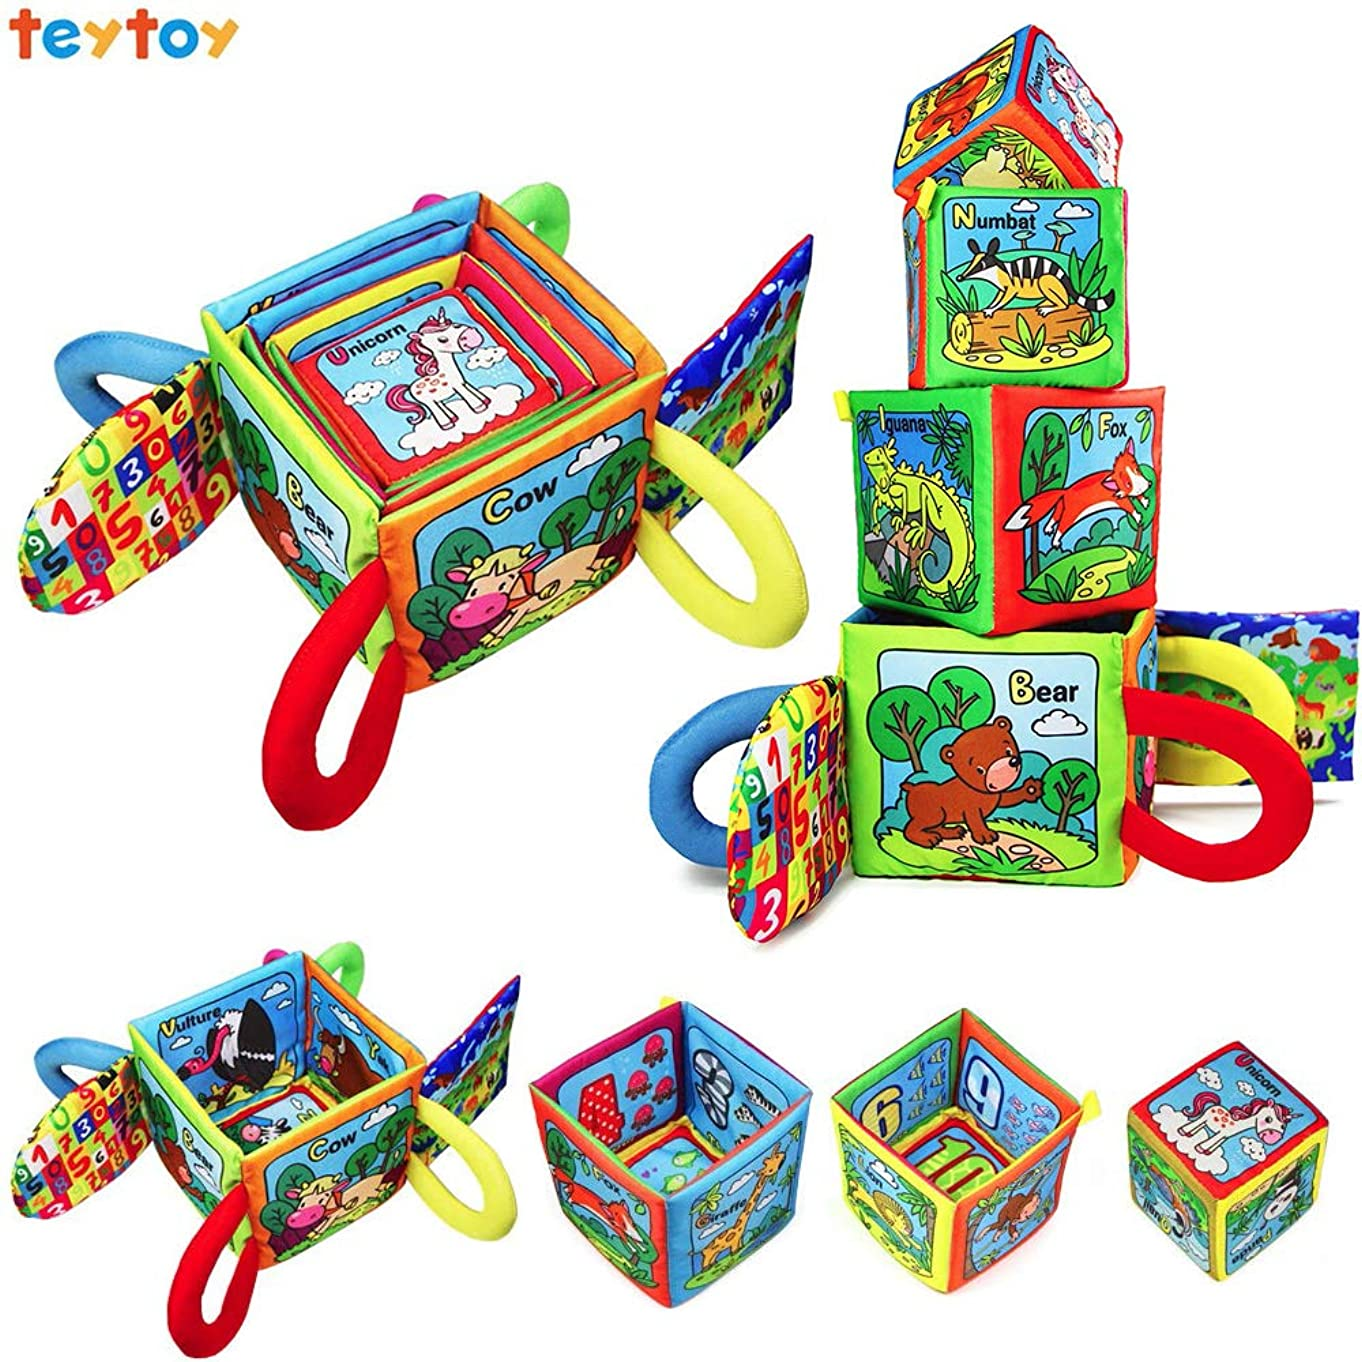 teytoy Baby Toys Cotton Animals Magical Stacking Blocks with Soft Rattle for Over 8 Months